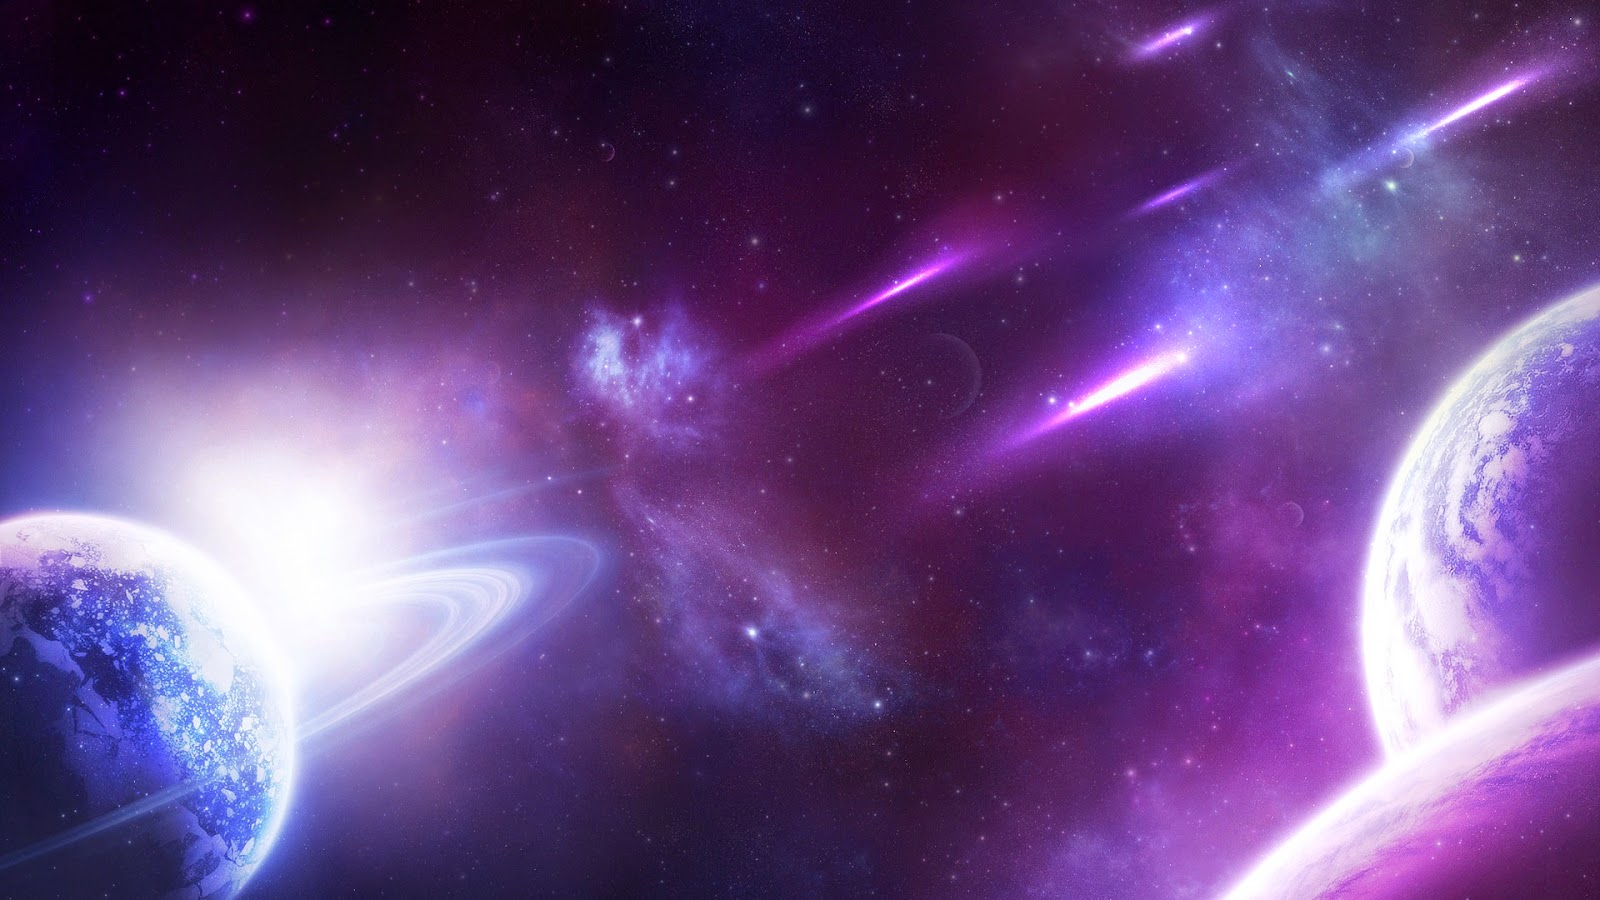 Galaxy Wallpaper Hd 1080p More Information